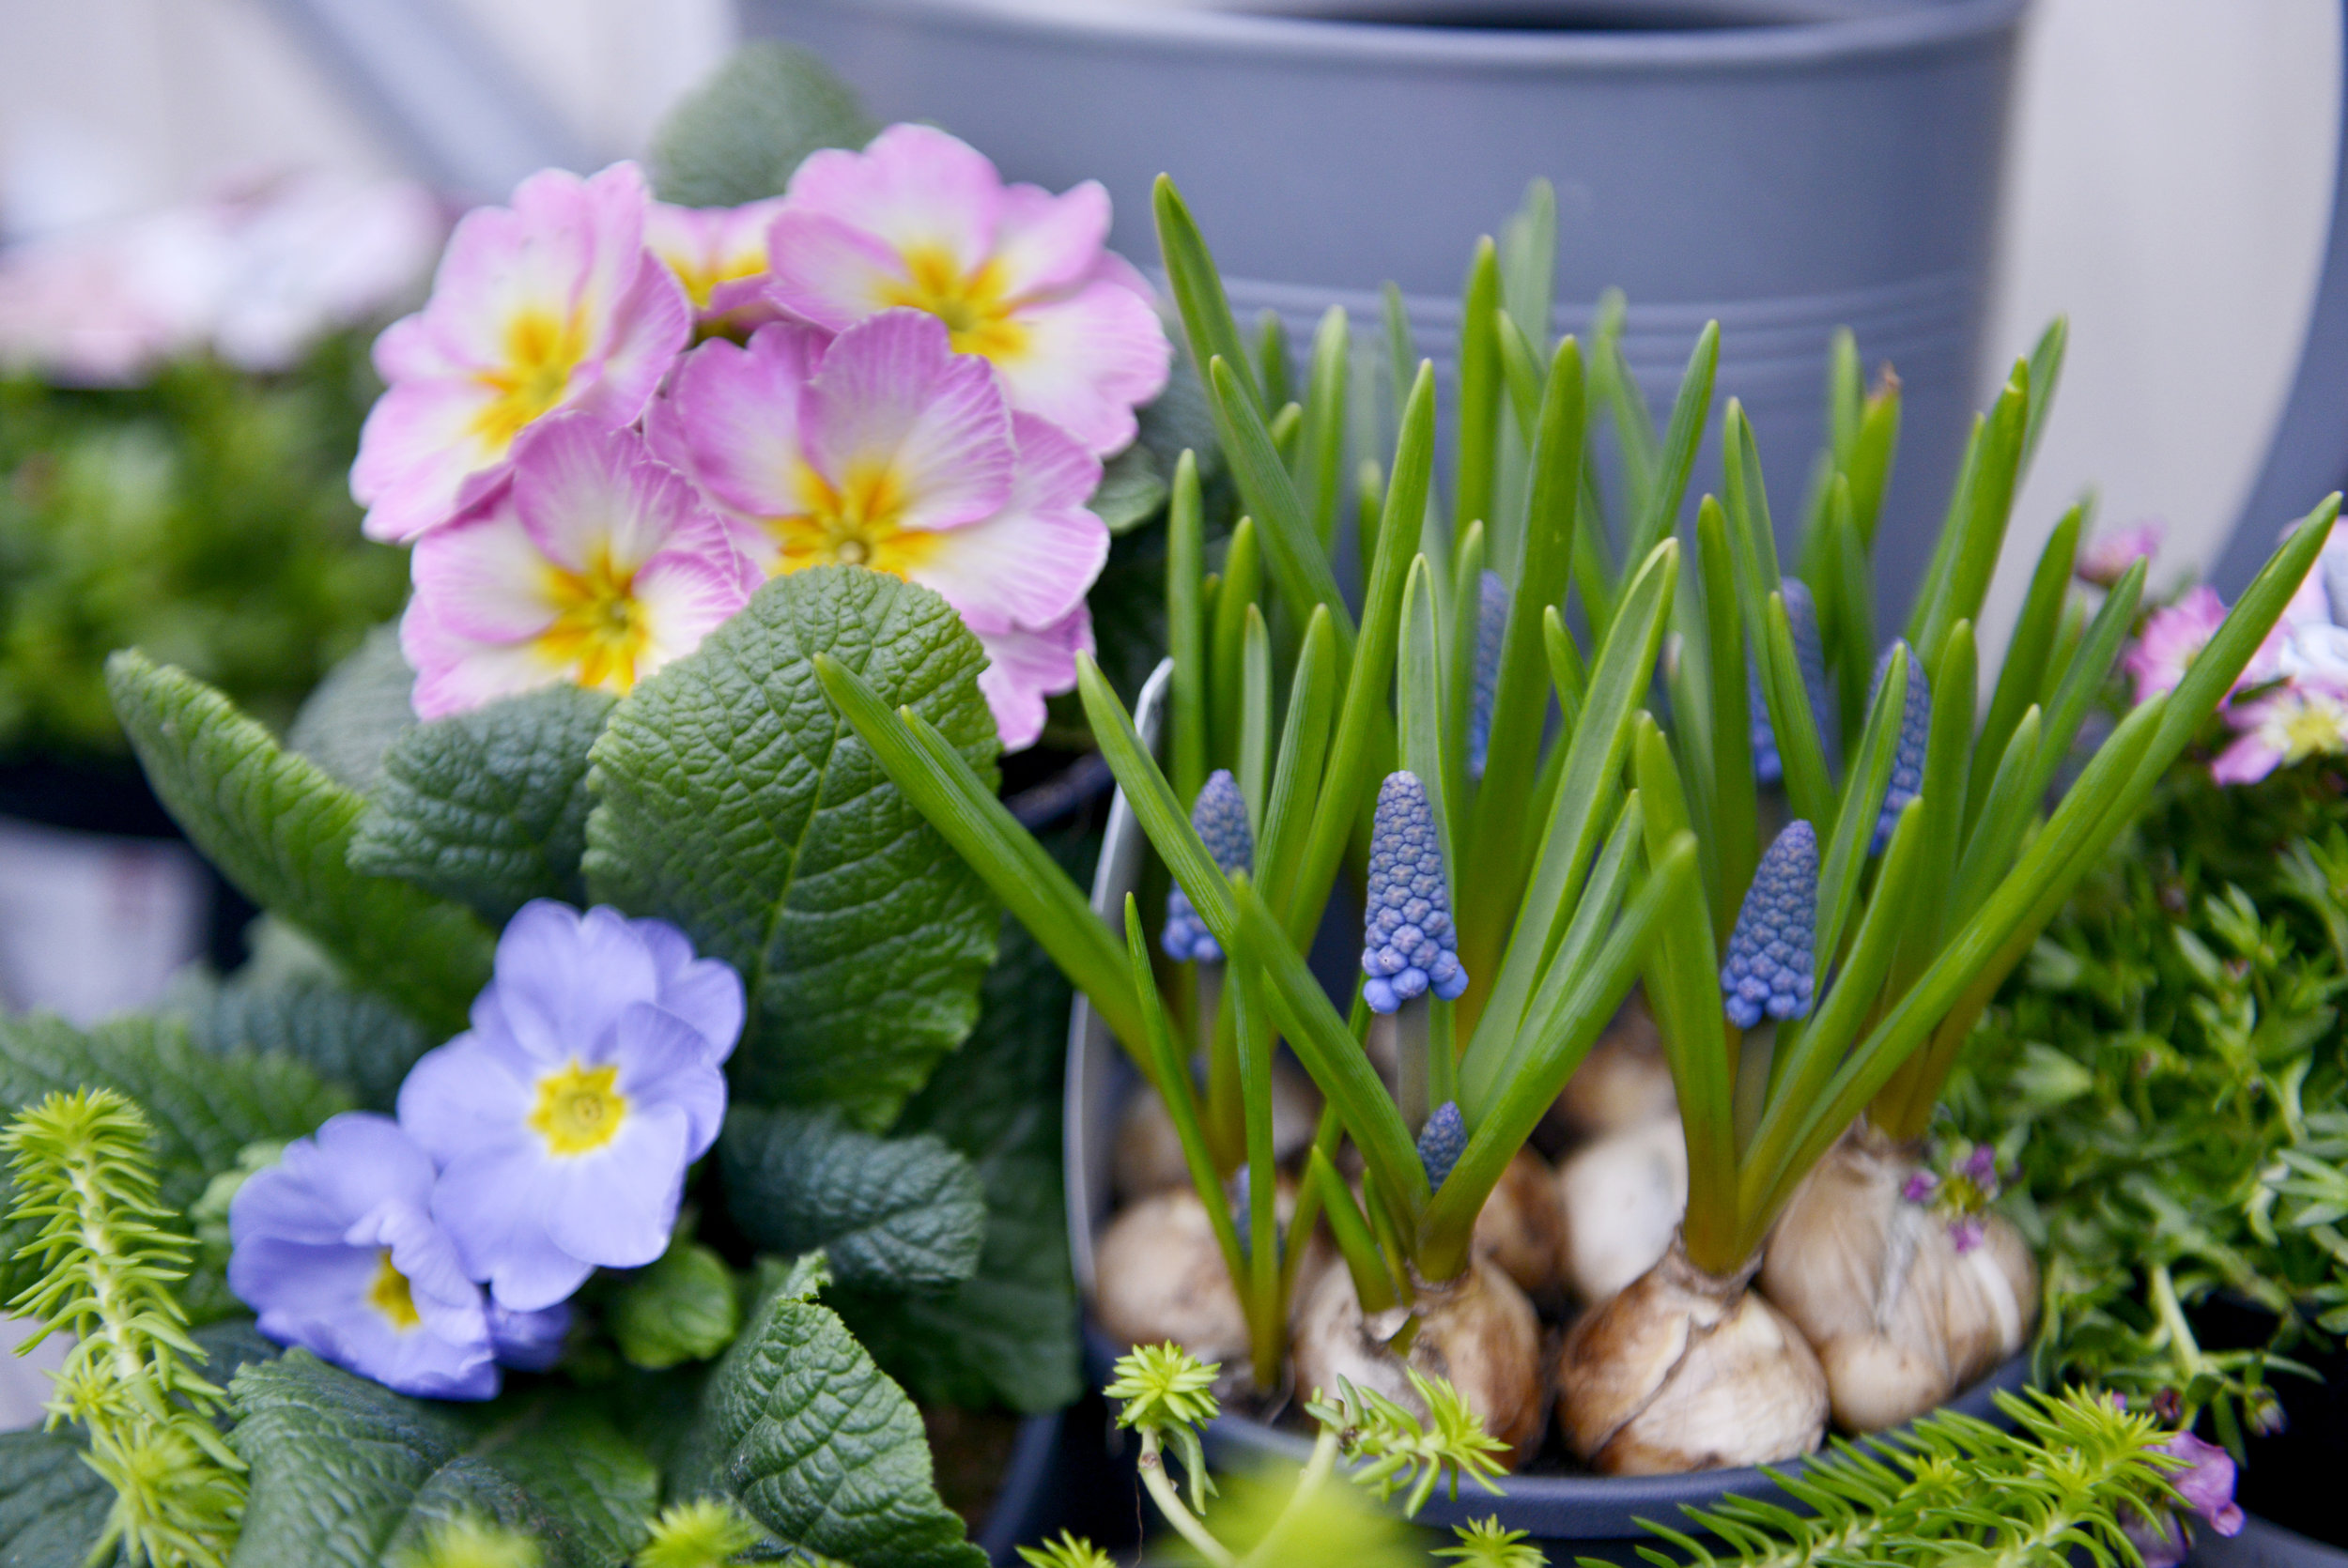 Light Bulb Moment - Don't worry if you've forgotten to plant your Spring bulbs we've done it for you! We have Hyacinth, Muscari, Tete a Tete, Snow Drops, Iris, Crocus and Tulips available.